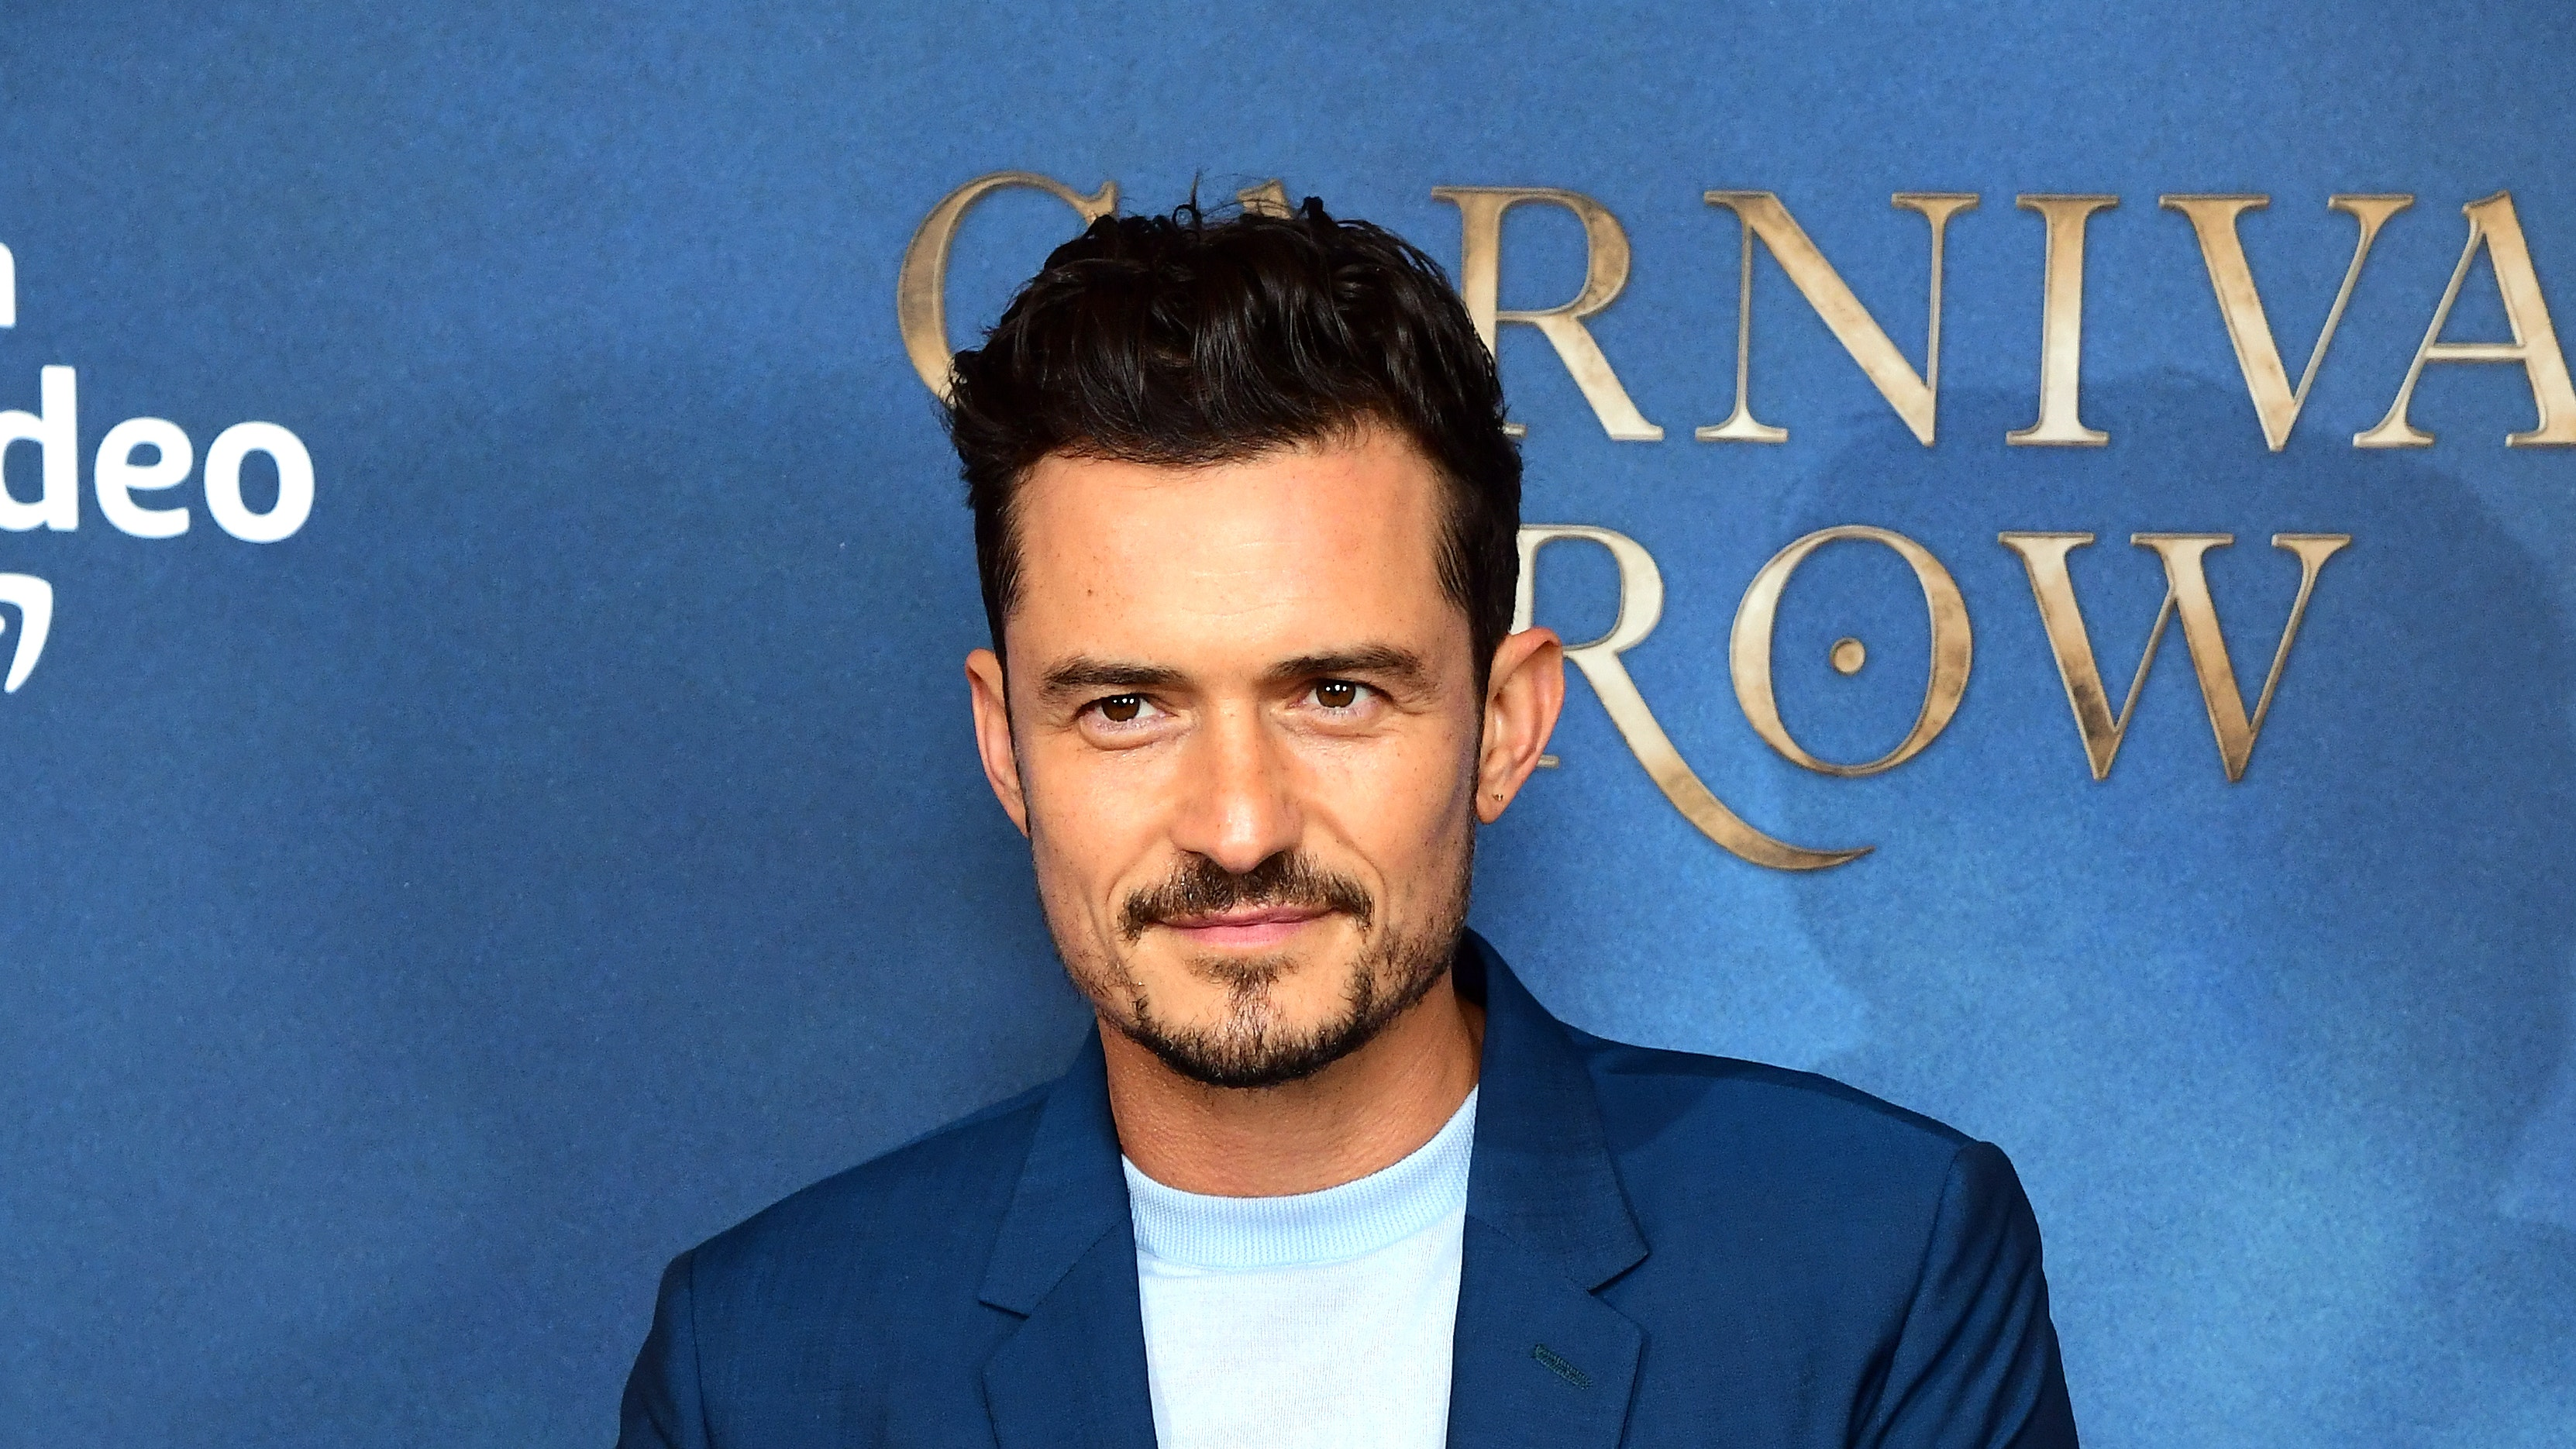 Orlando Bloom naked pictures with Katy Perry spark huge